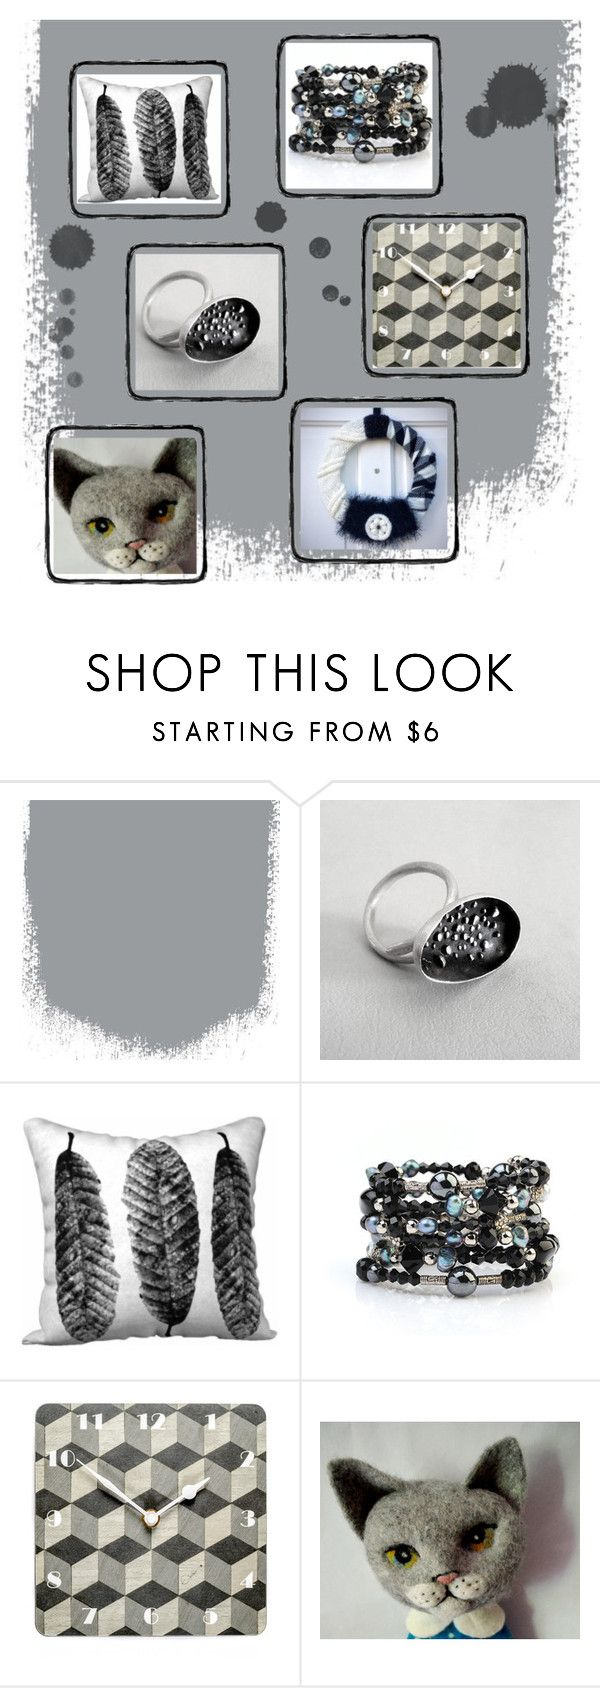 """The Grey that Matters"" by fivefoot1designs ❤ liked on Polyvore featuring interior, interiors, interior design, home, home decor, interior decorating and Satine"